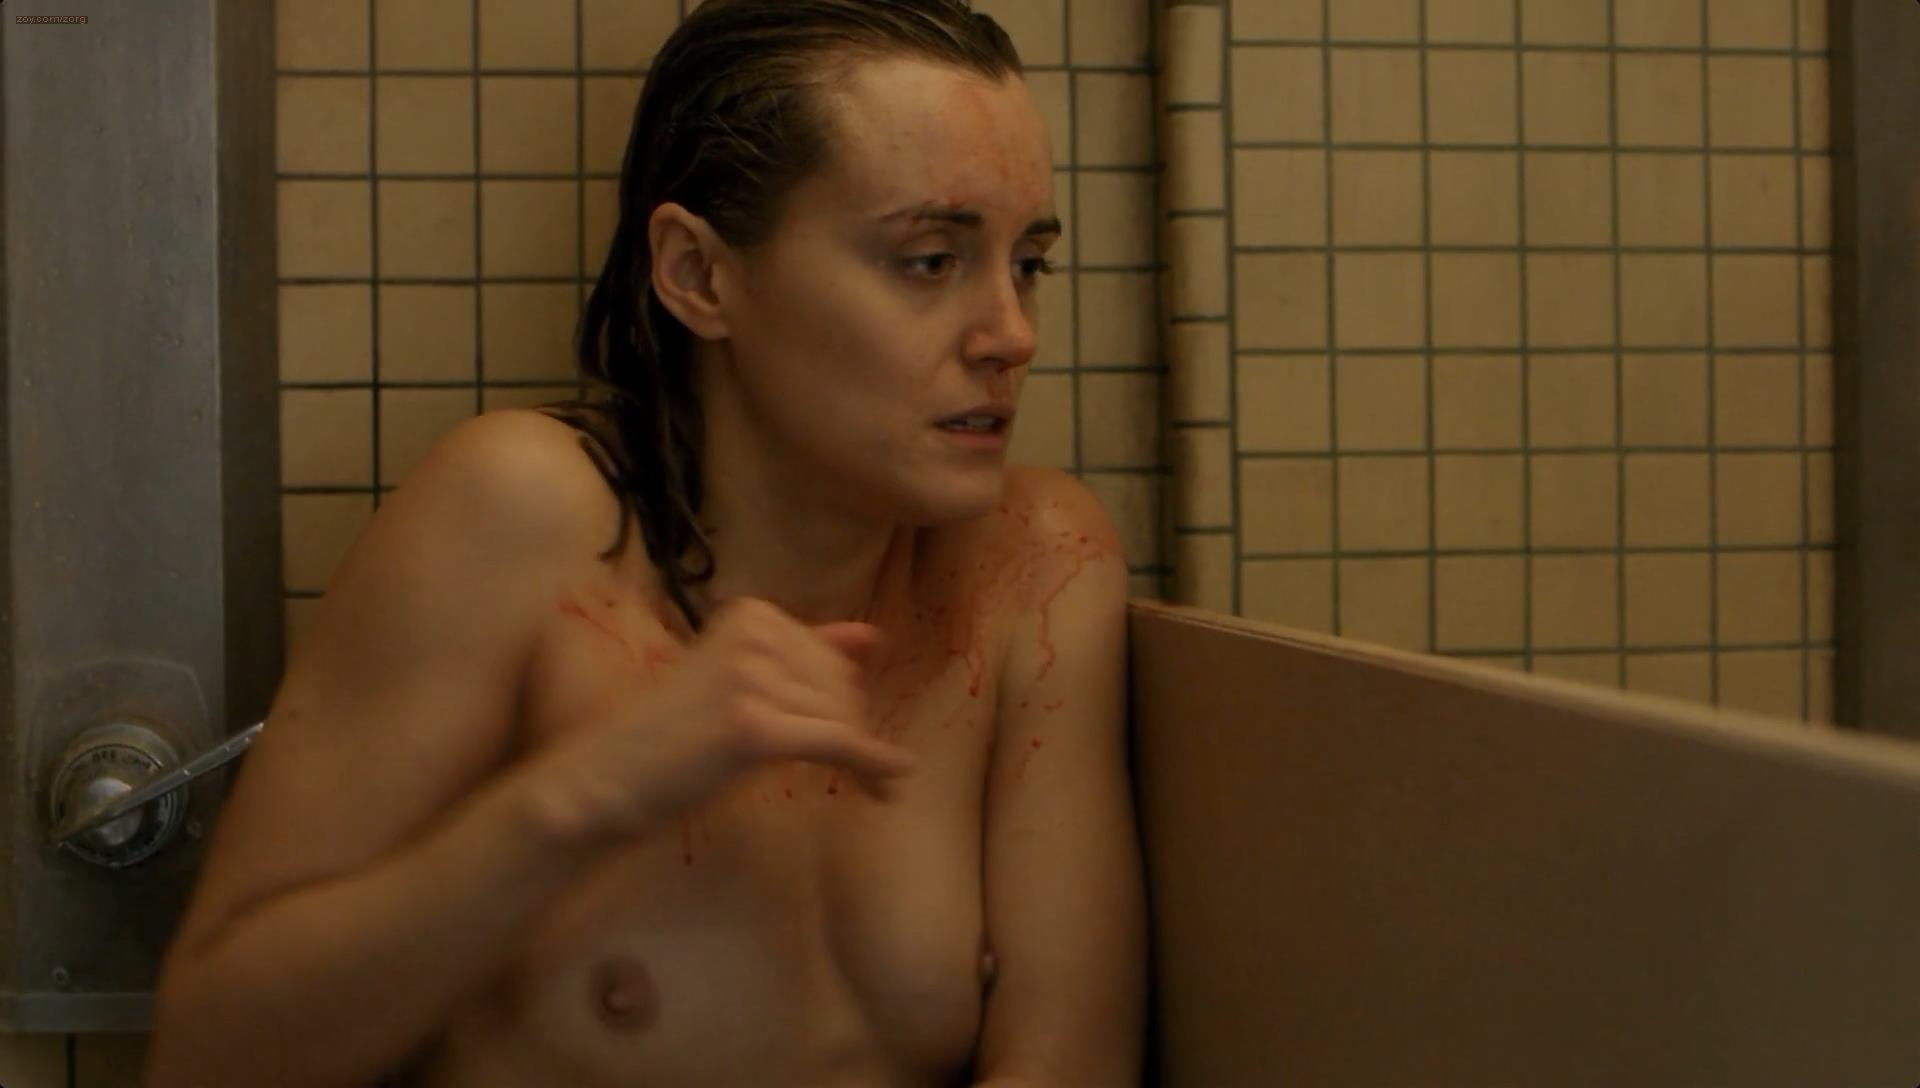 laura-prepon-nude-movie-scene